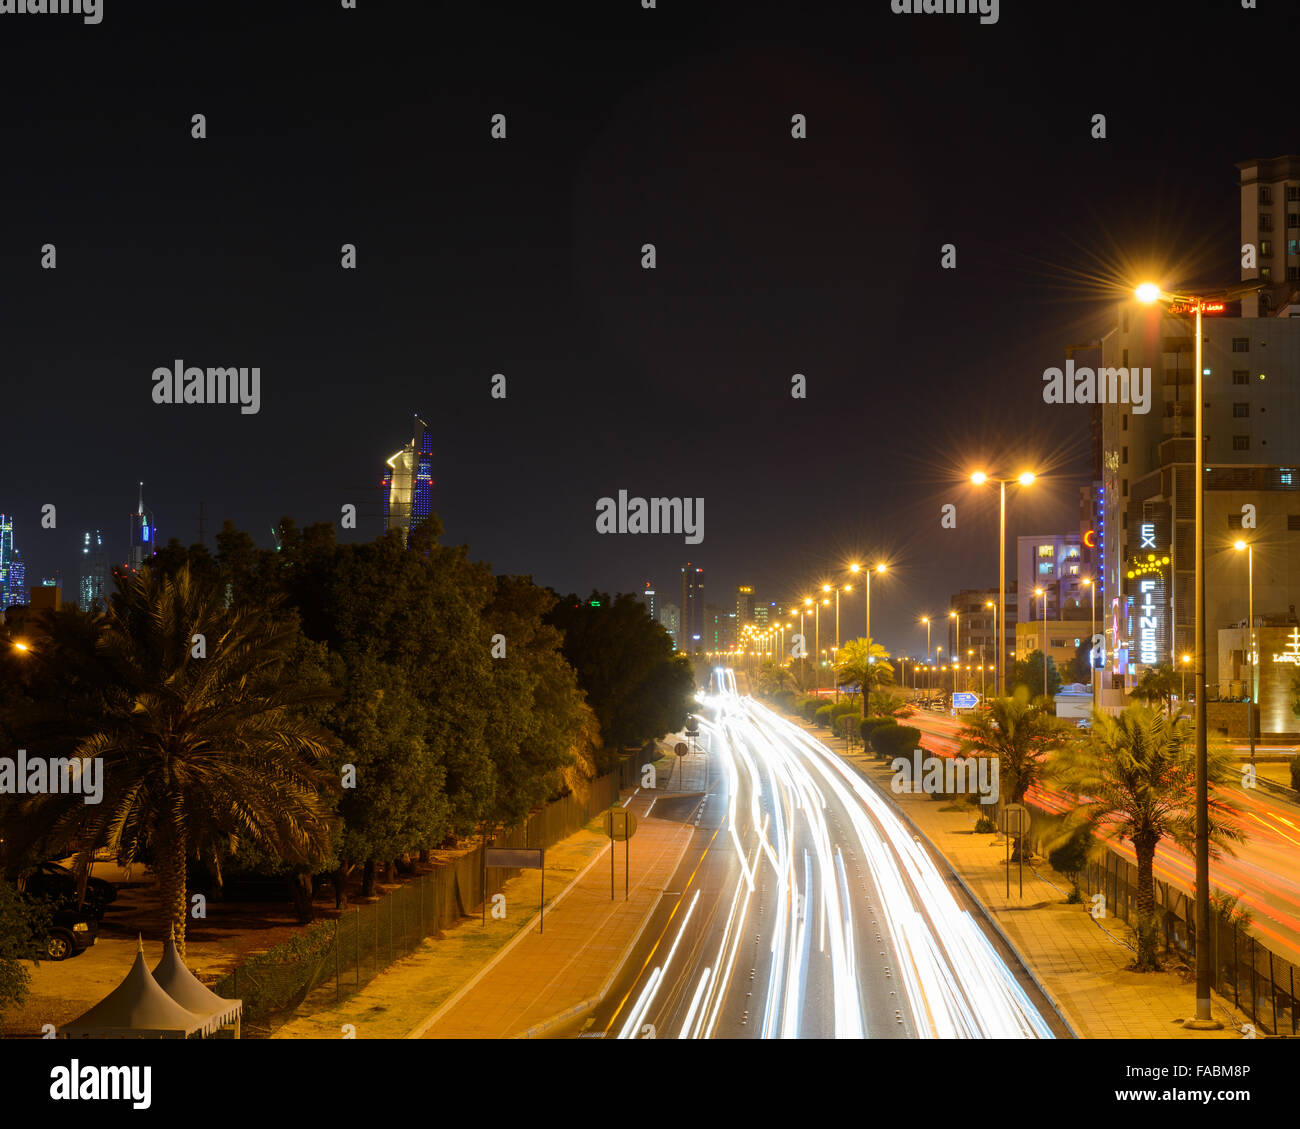 Night traffic on the Fahaheel Expressway (Road 30) heading in and out of Kuwait City - Stock Image